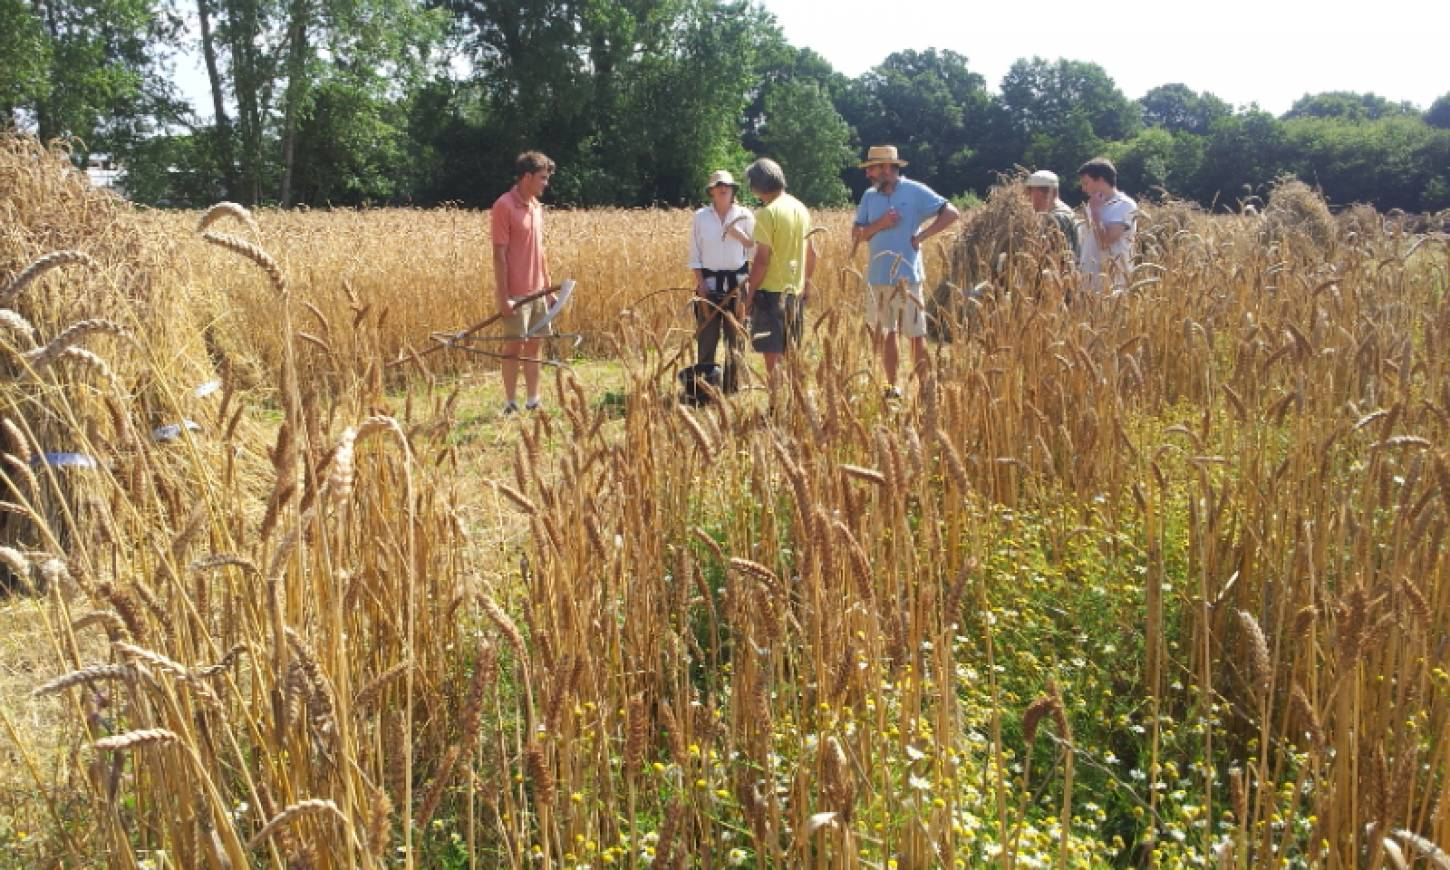 WoWo manual harvest pic: Ann Bodkin, scythers conference - 10:57am&nbsp;8<sup>th</sup>&nbsp;Aug.&nbsp;'15